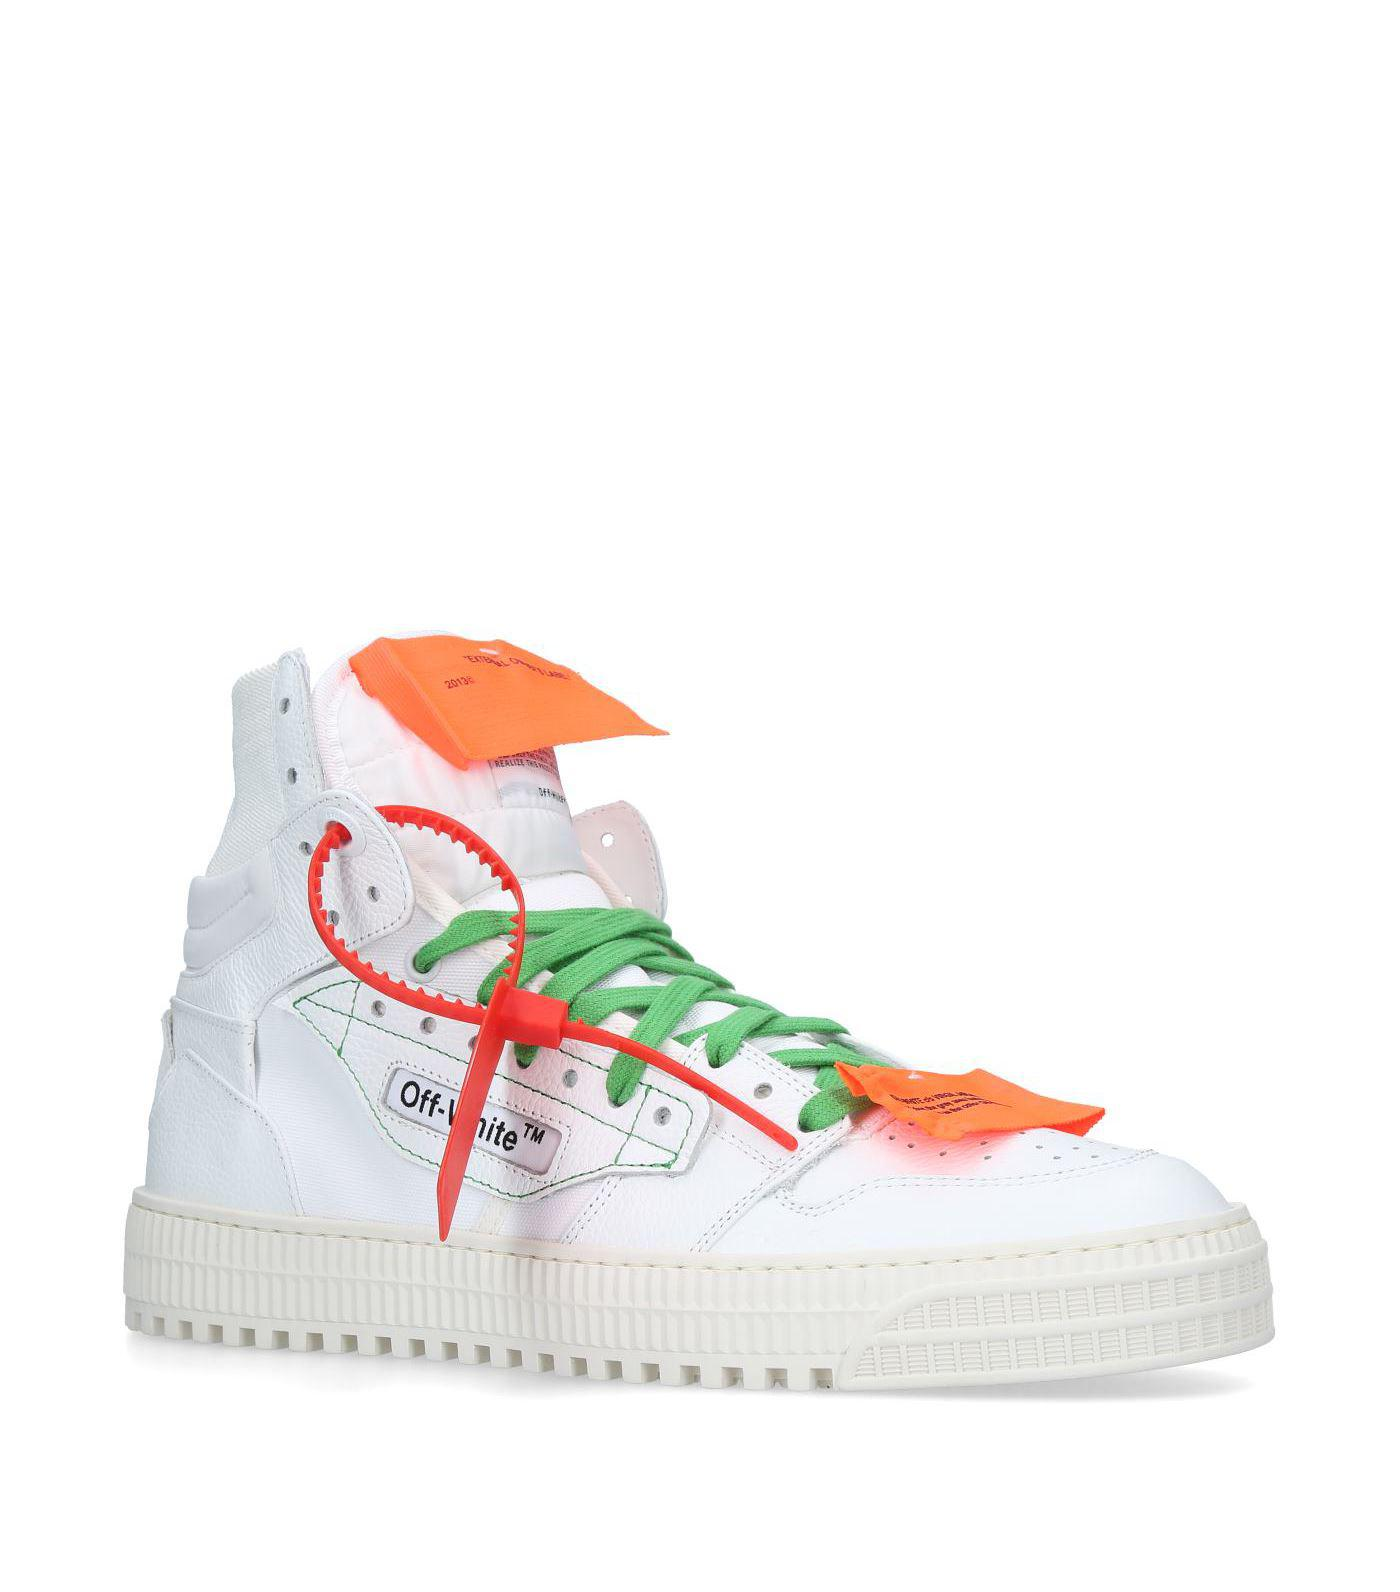 ba89418e240a9 Lyst - Off-White C O Virgil Abloh Low Top 3.0 Sneakers in White for Men